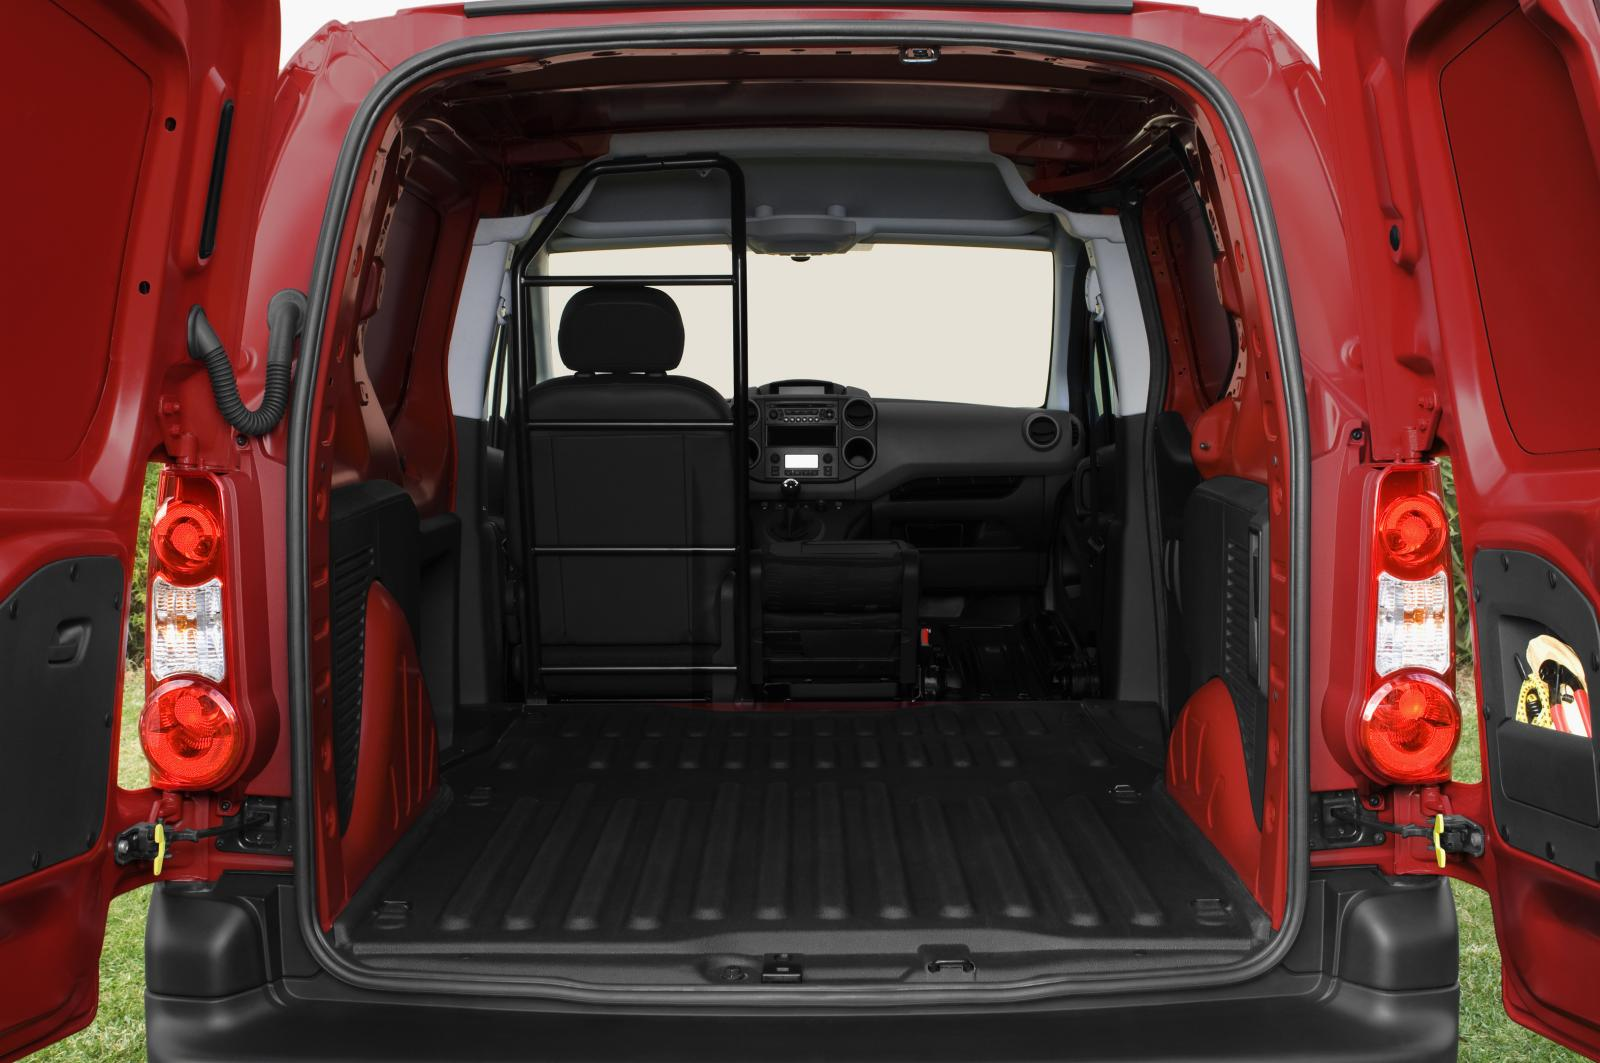 Berlingo 2008 seats folded down